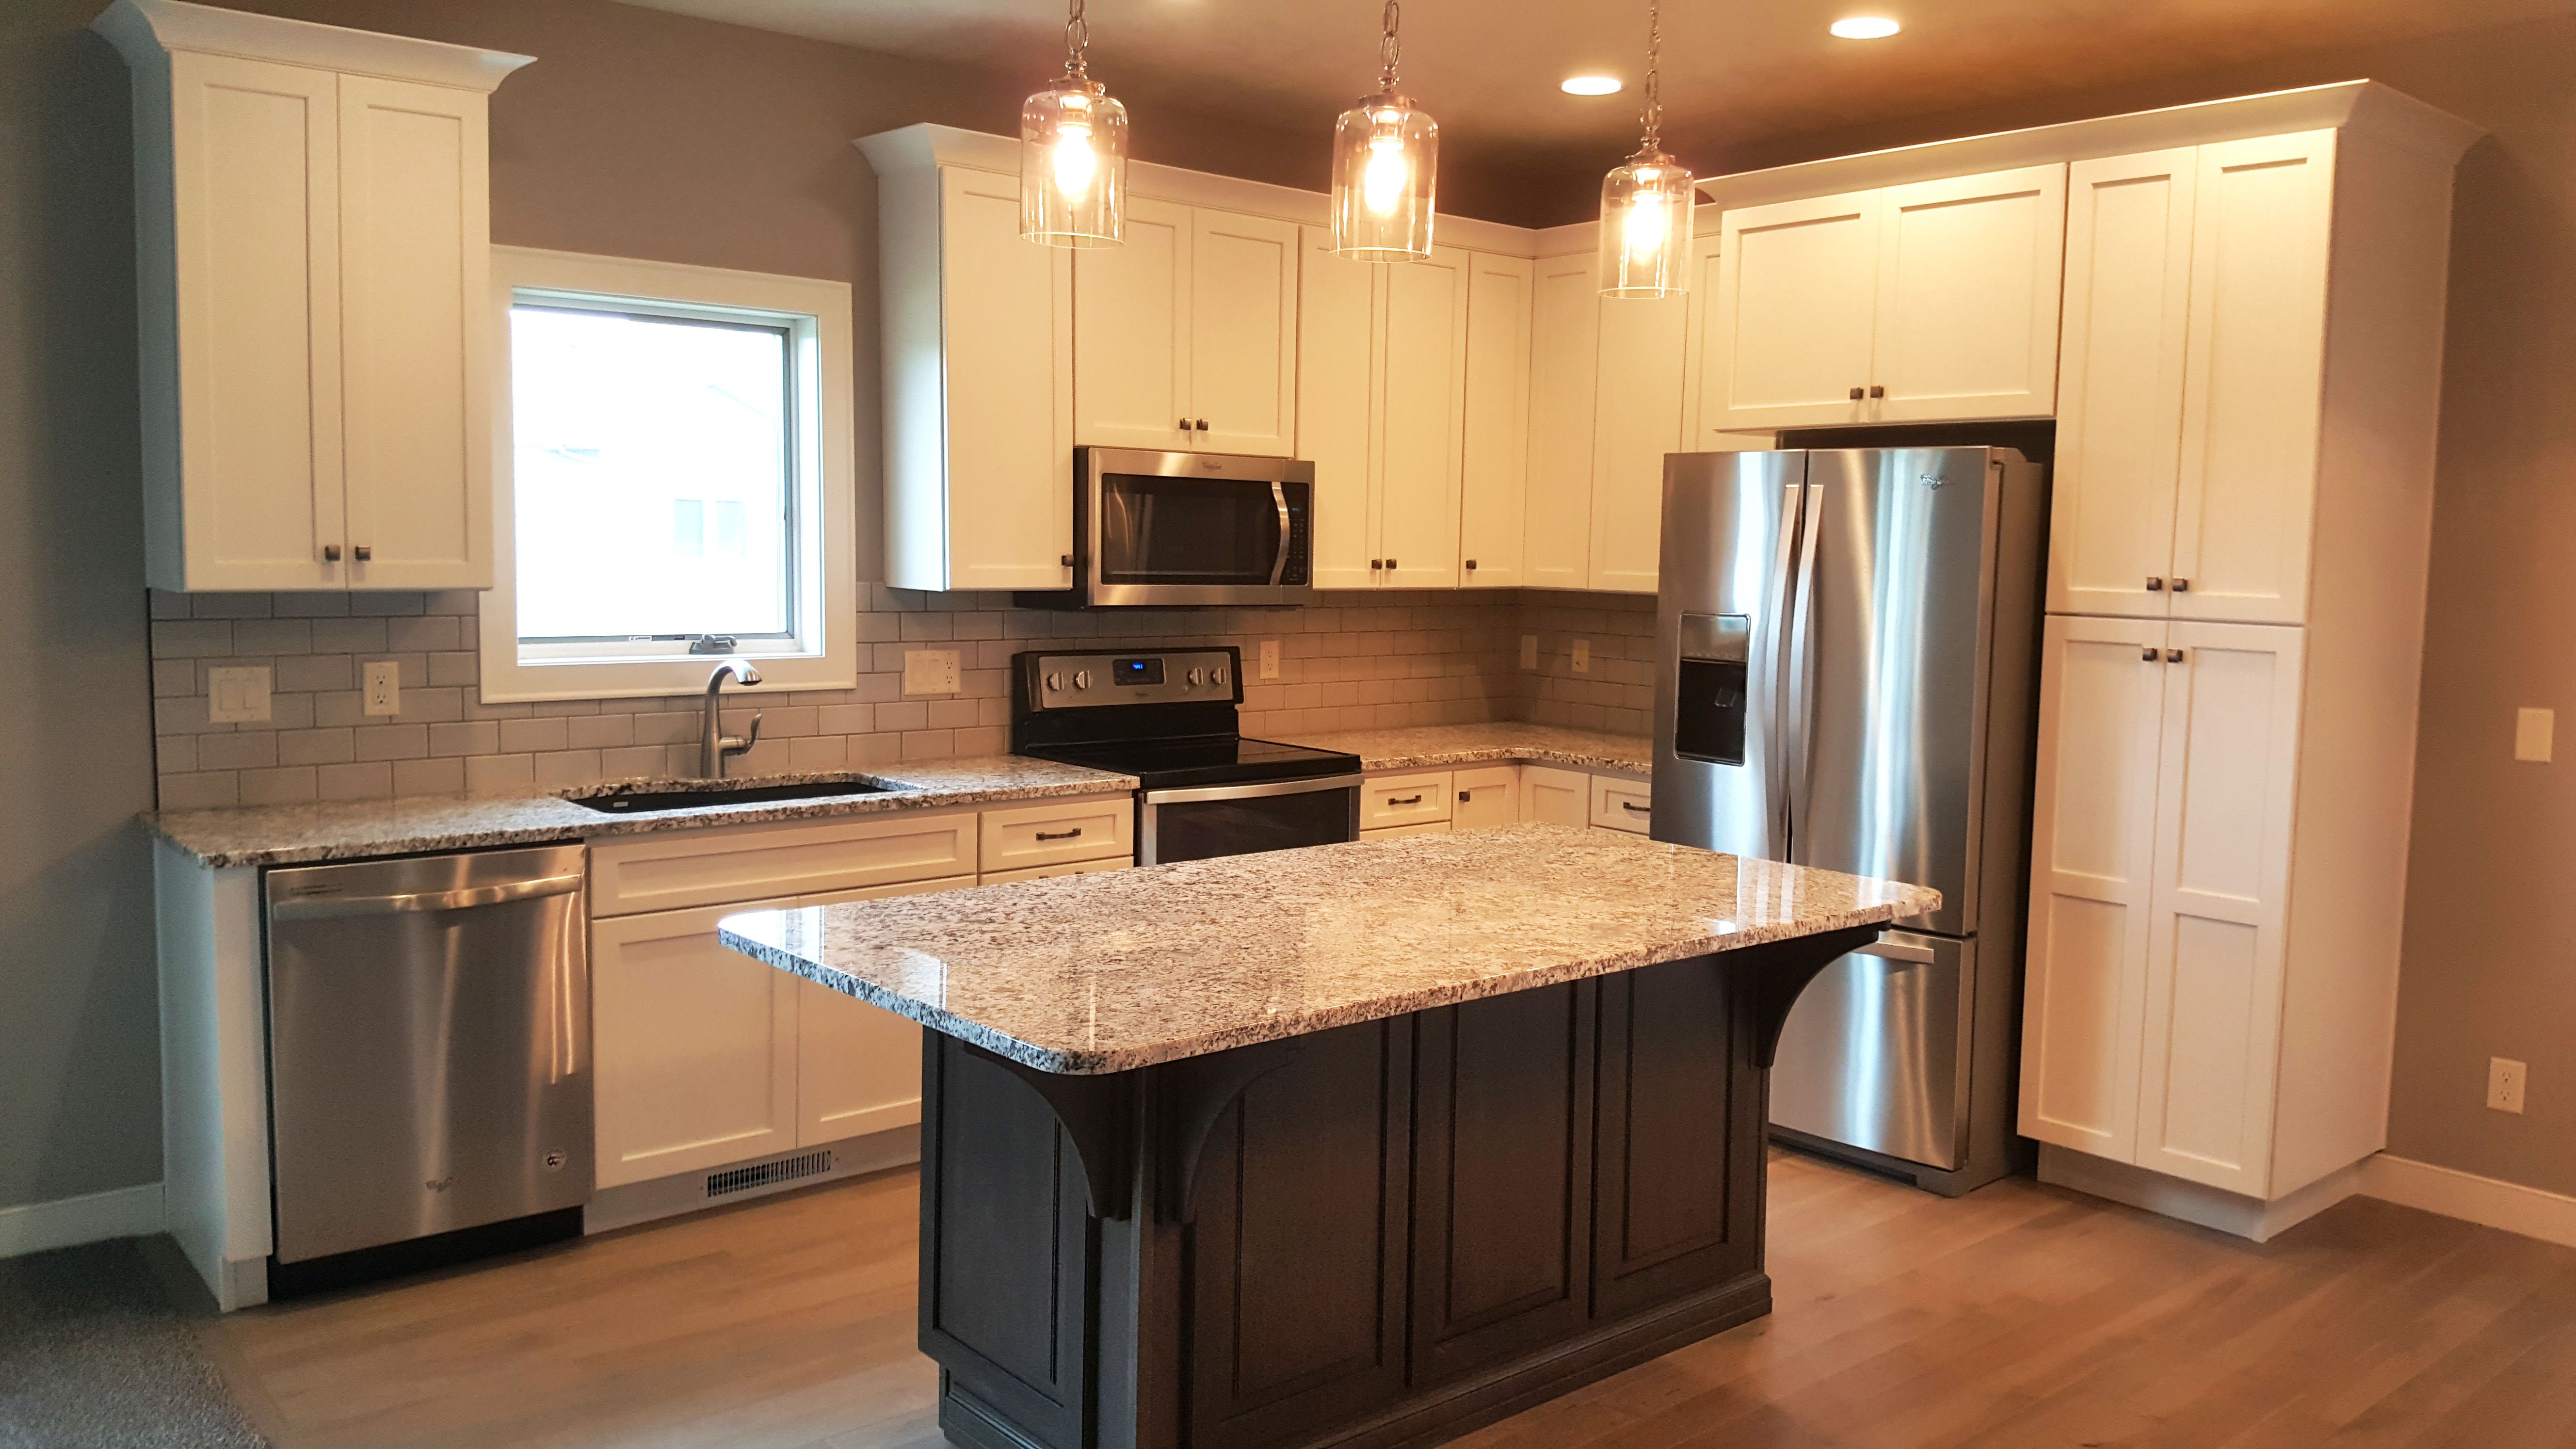 Kitchen Features Open Layout Starmark Cabinetry Cabinets In Maple Finished In Marshmallow Cream And Hardwood In Kitchen Kitchen Design Open Appliance Cabinet